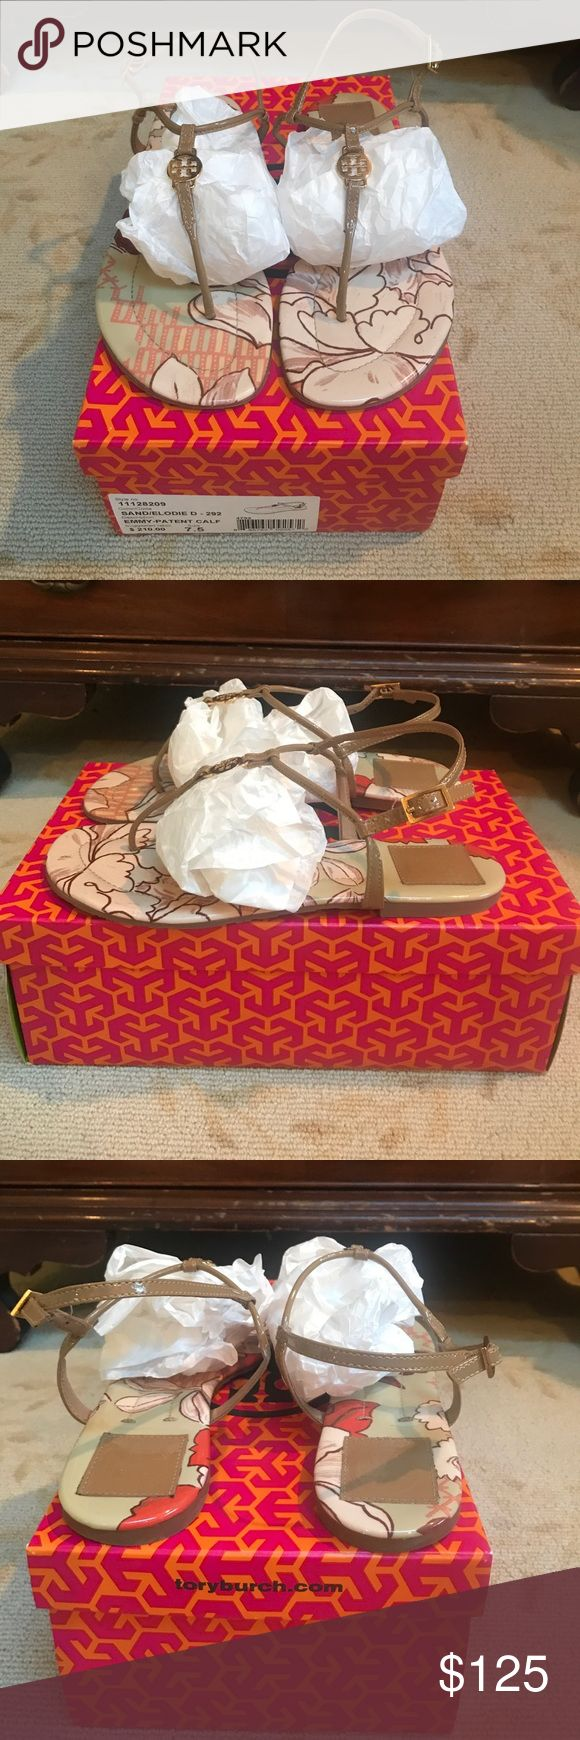 TORY BURCH EMMY-PATENT SANDAL Like new! Hardly worn. Sand color with design padding on bottom. Kept in box. True 7.5 Tory Burch Shoes Sandals